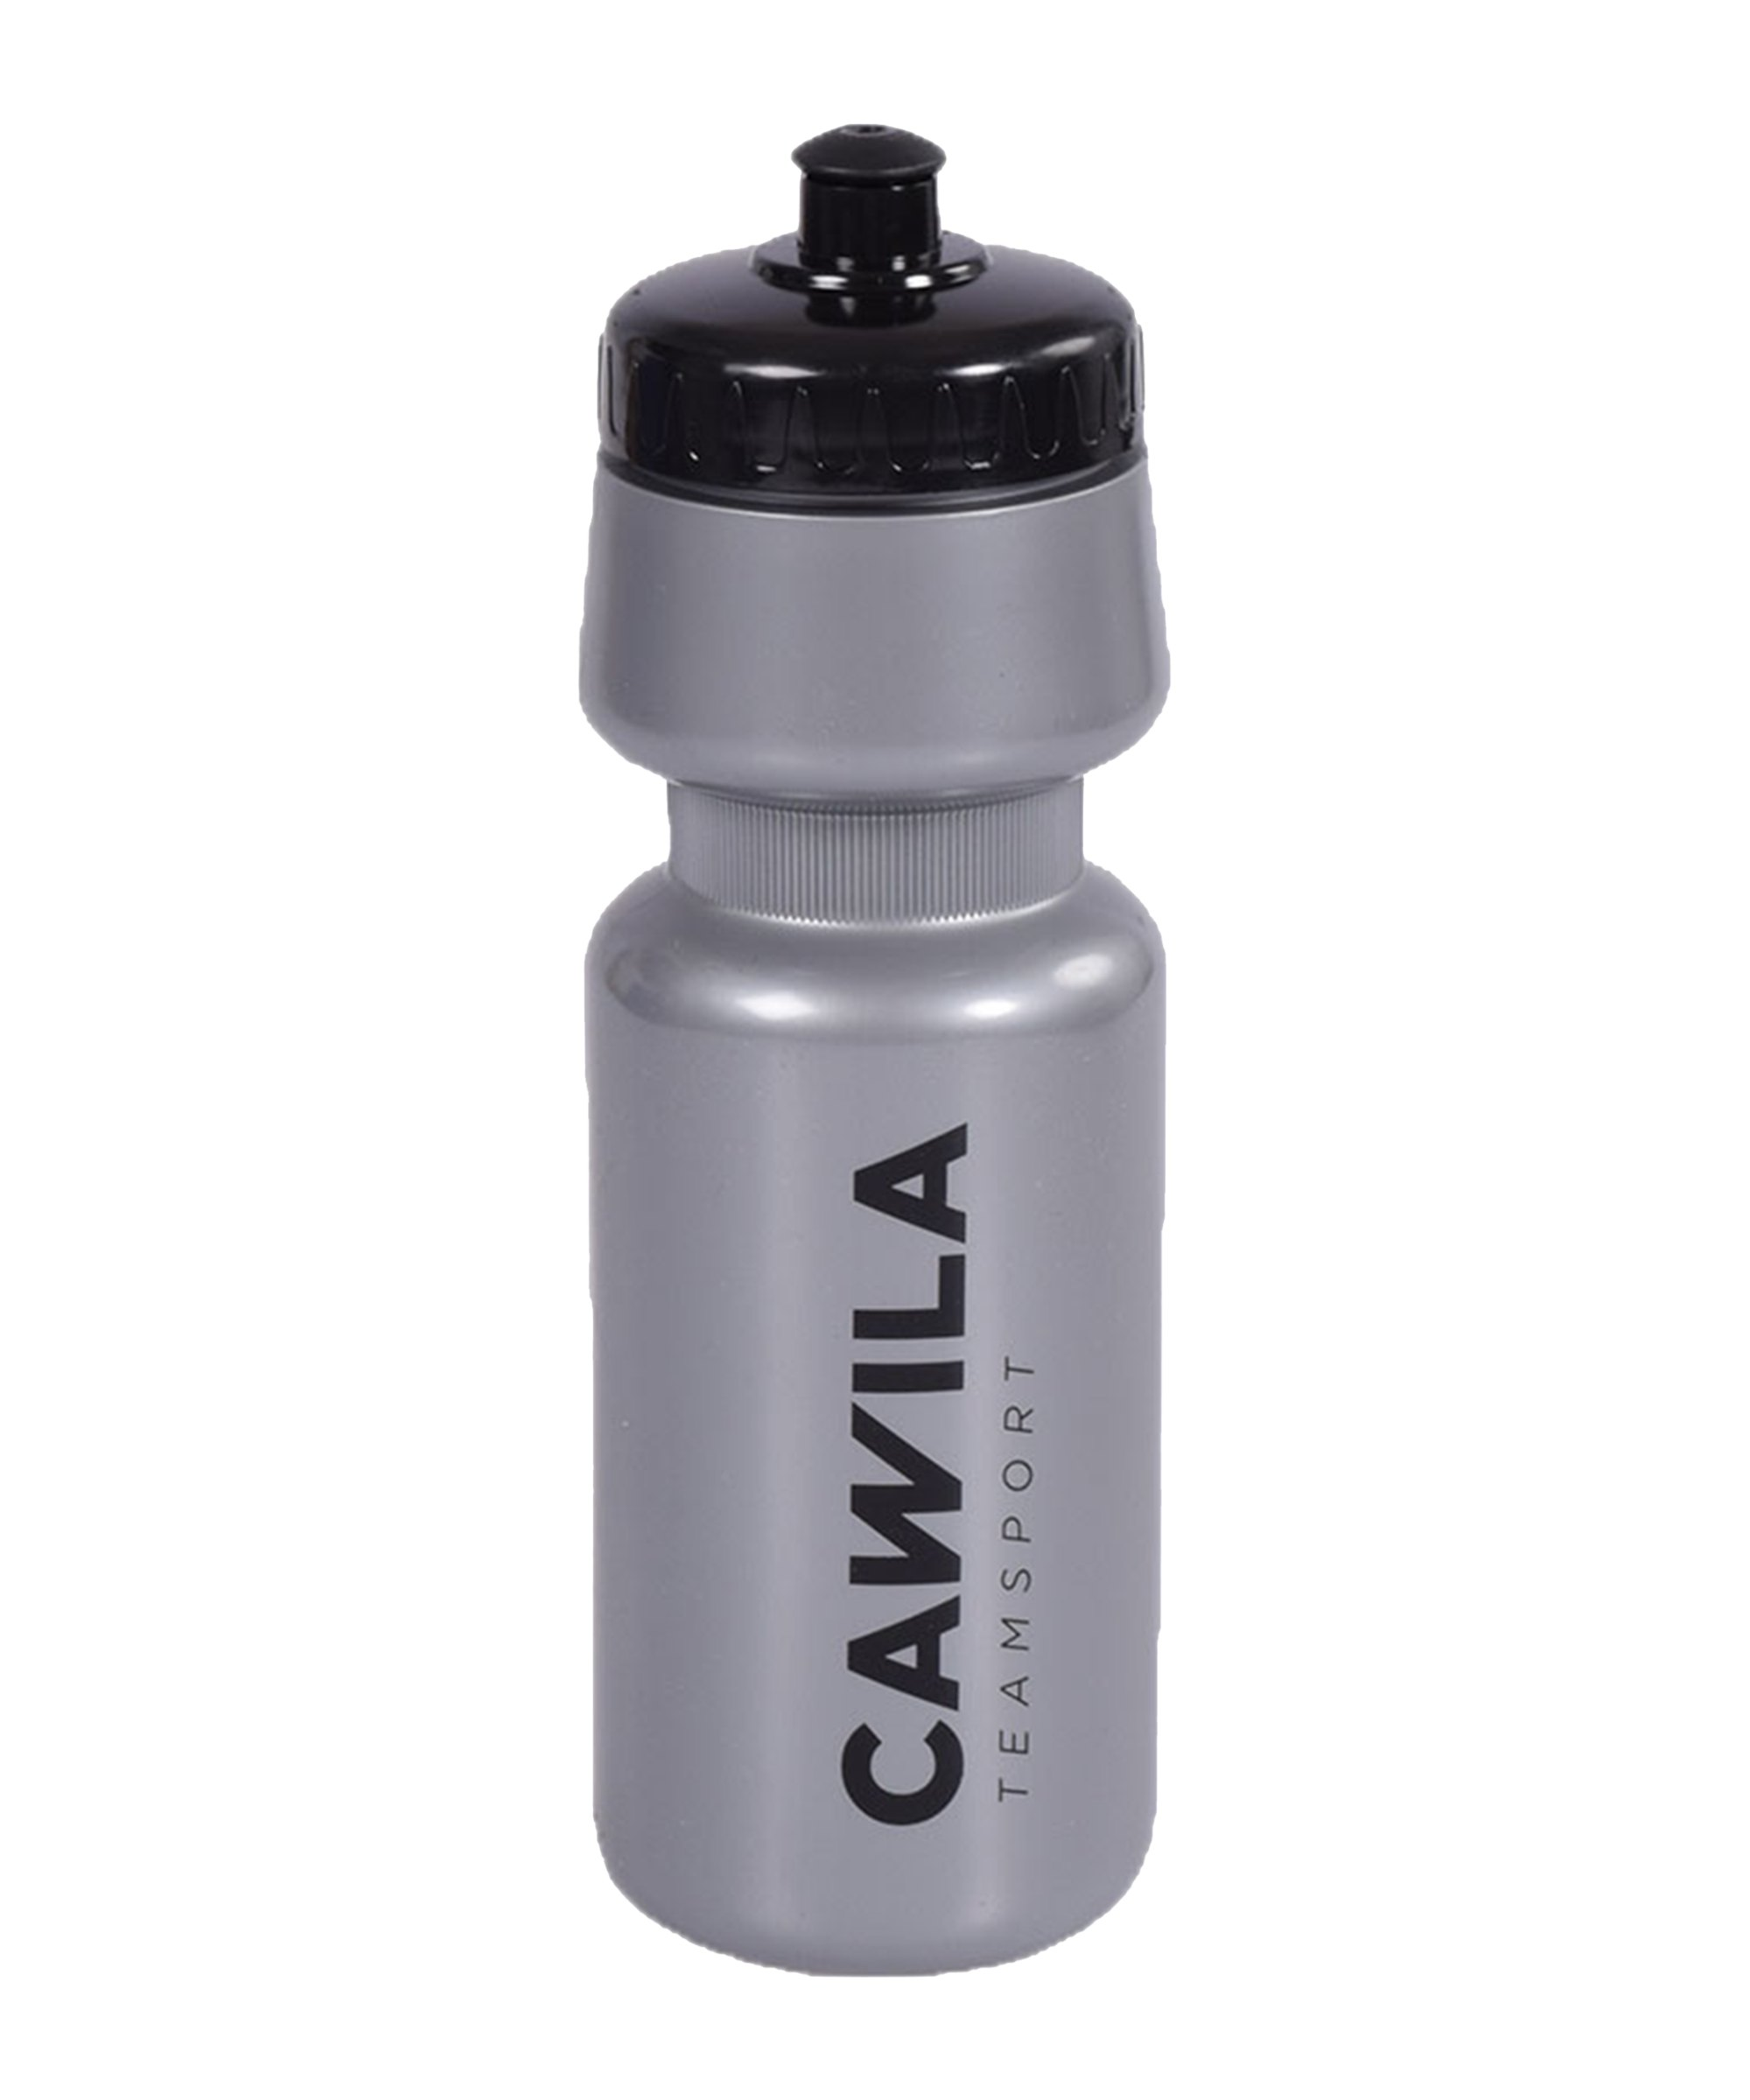 Cawila Trinkflasche 700ml Silber - silber